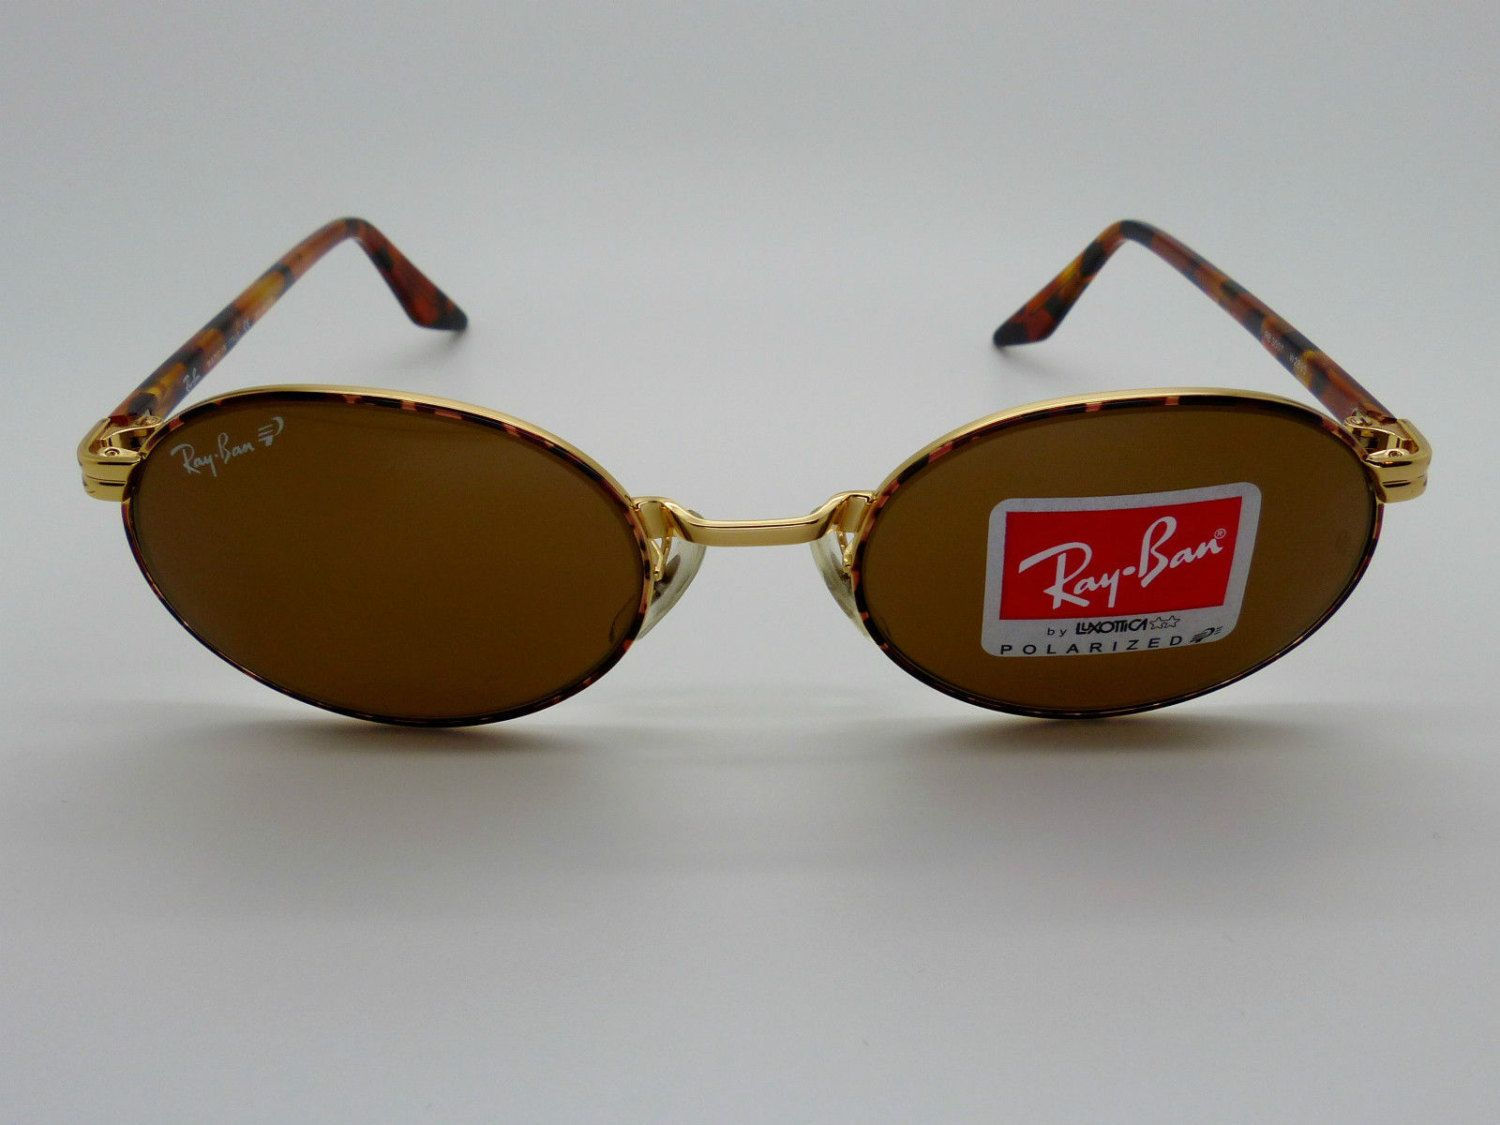 eb75e0a870 Ray Ban W2895 Sidestreet Polarised B L B-15 Lenses  Unisex Small  New! by  VSOx on Etsy